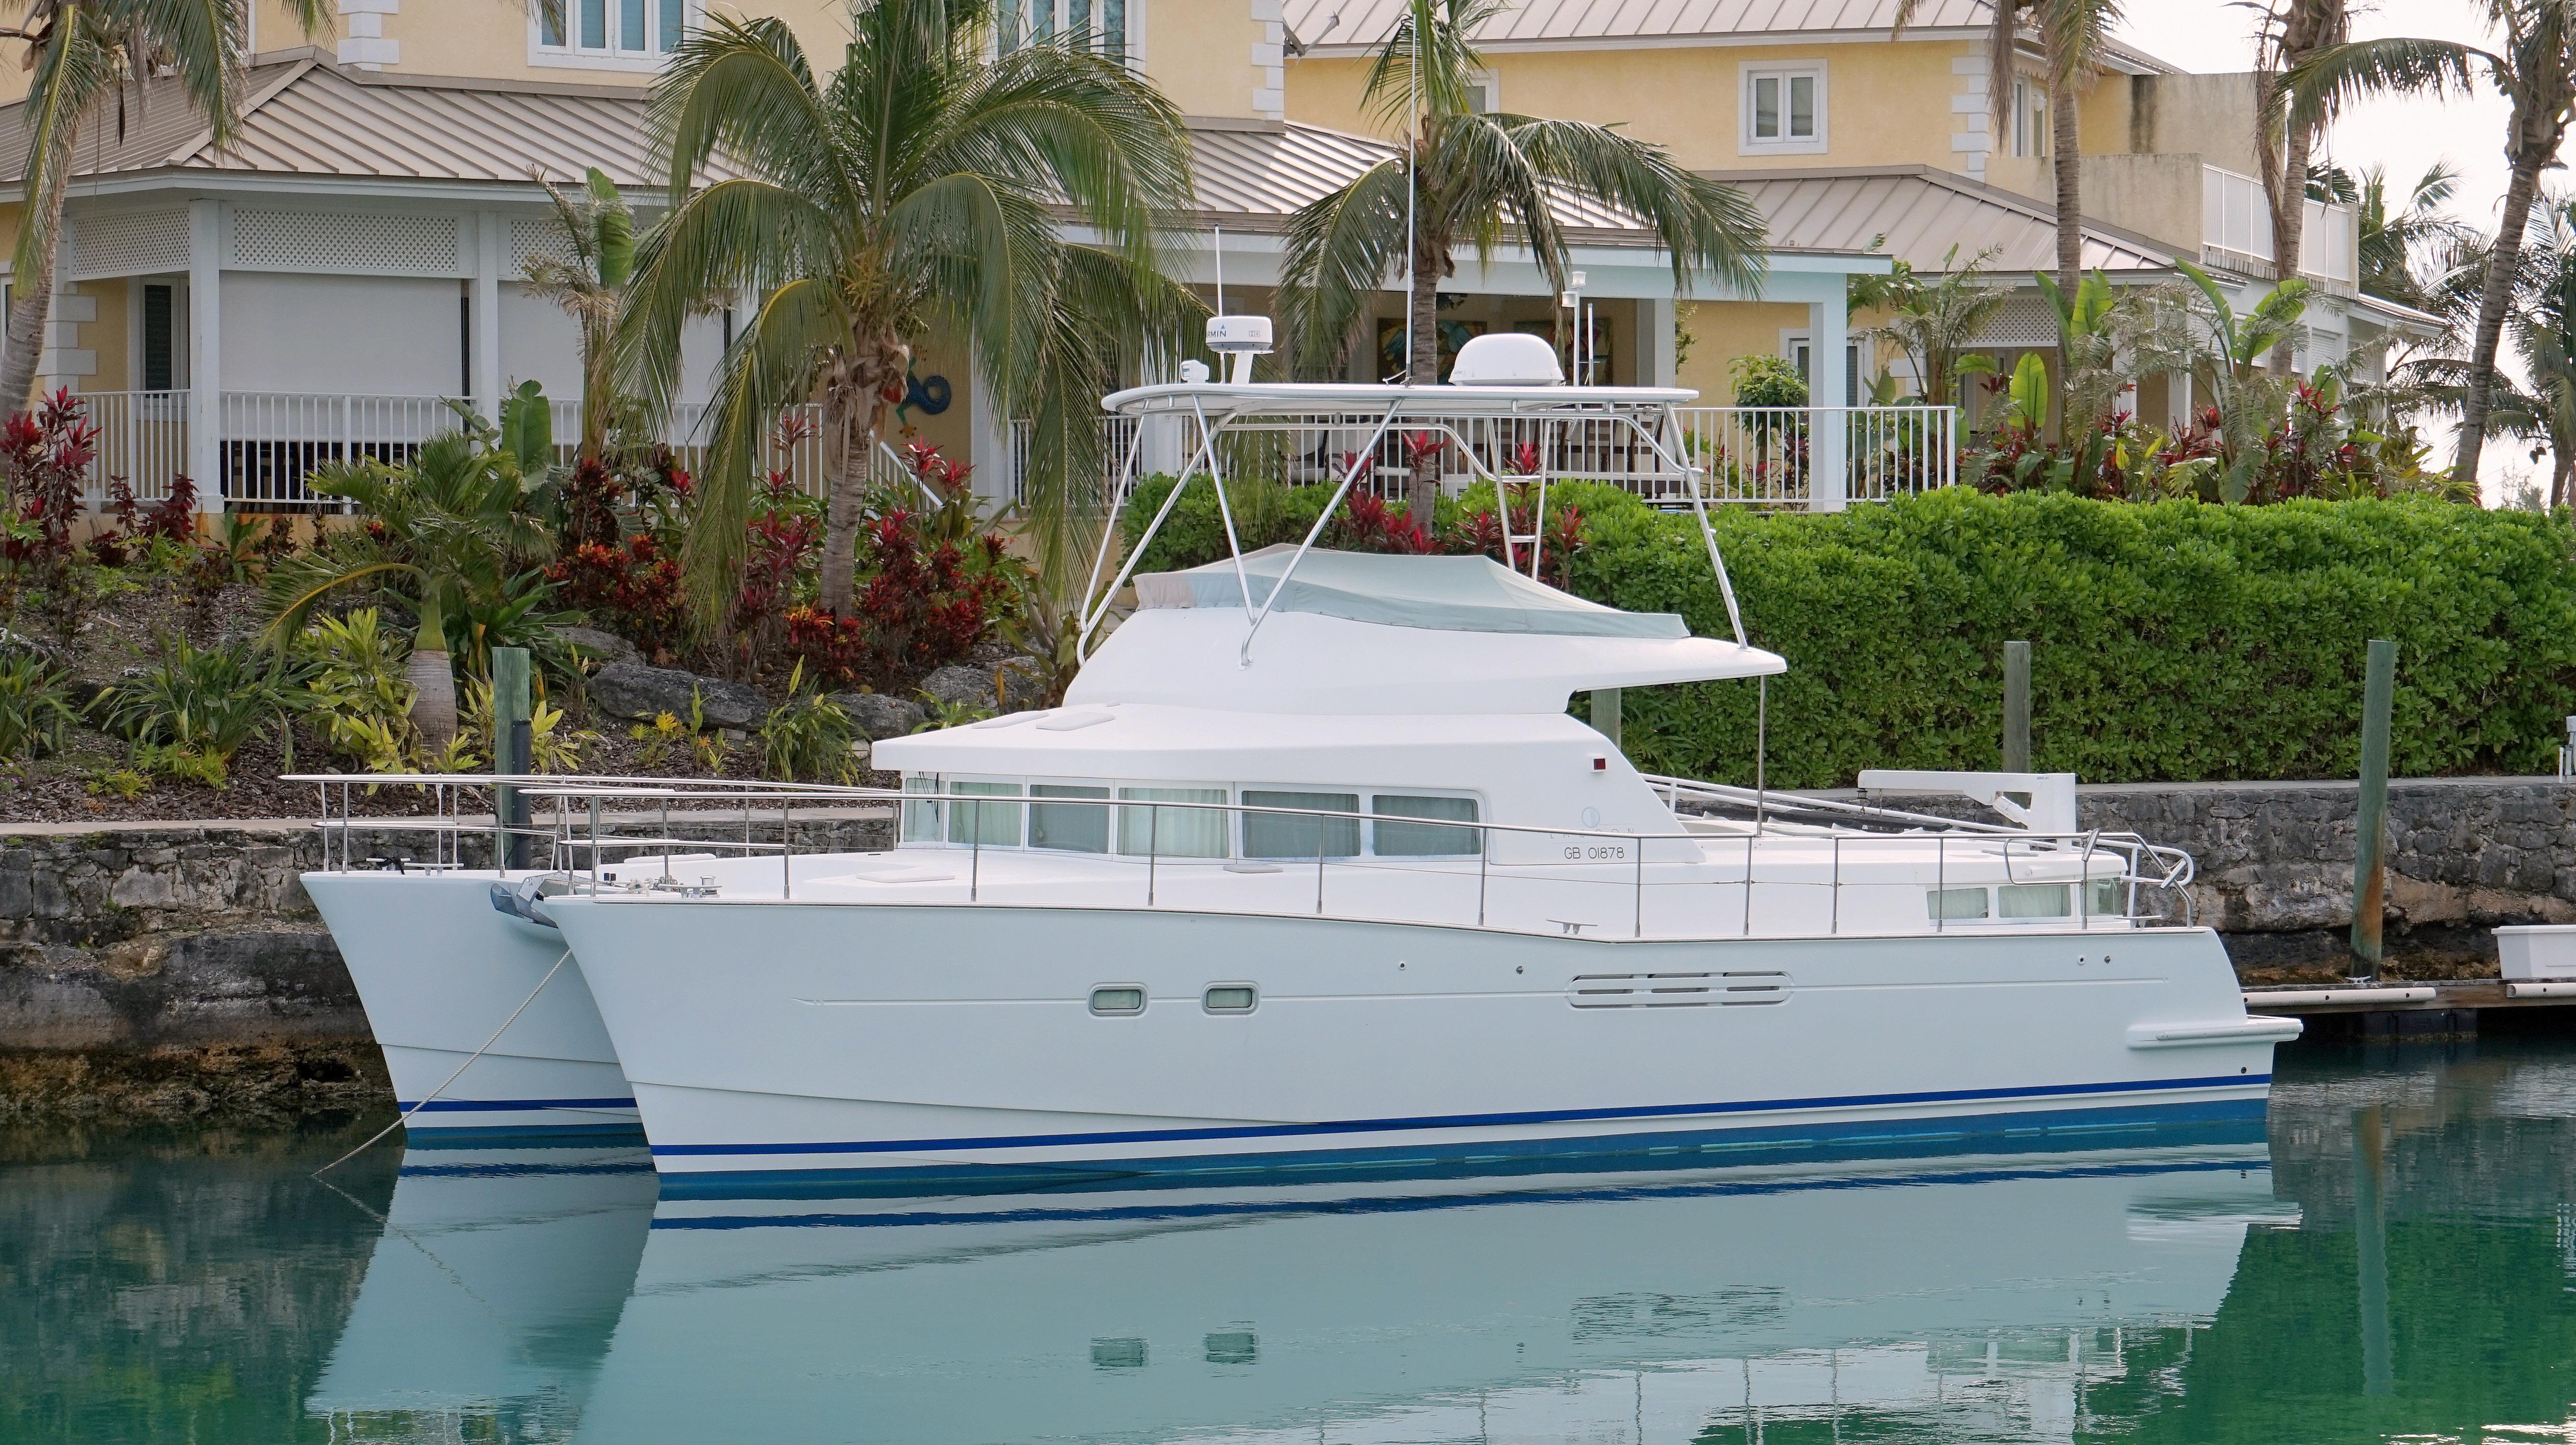 43' Lagoon 2001 Power Catamaran